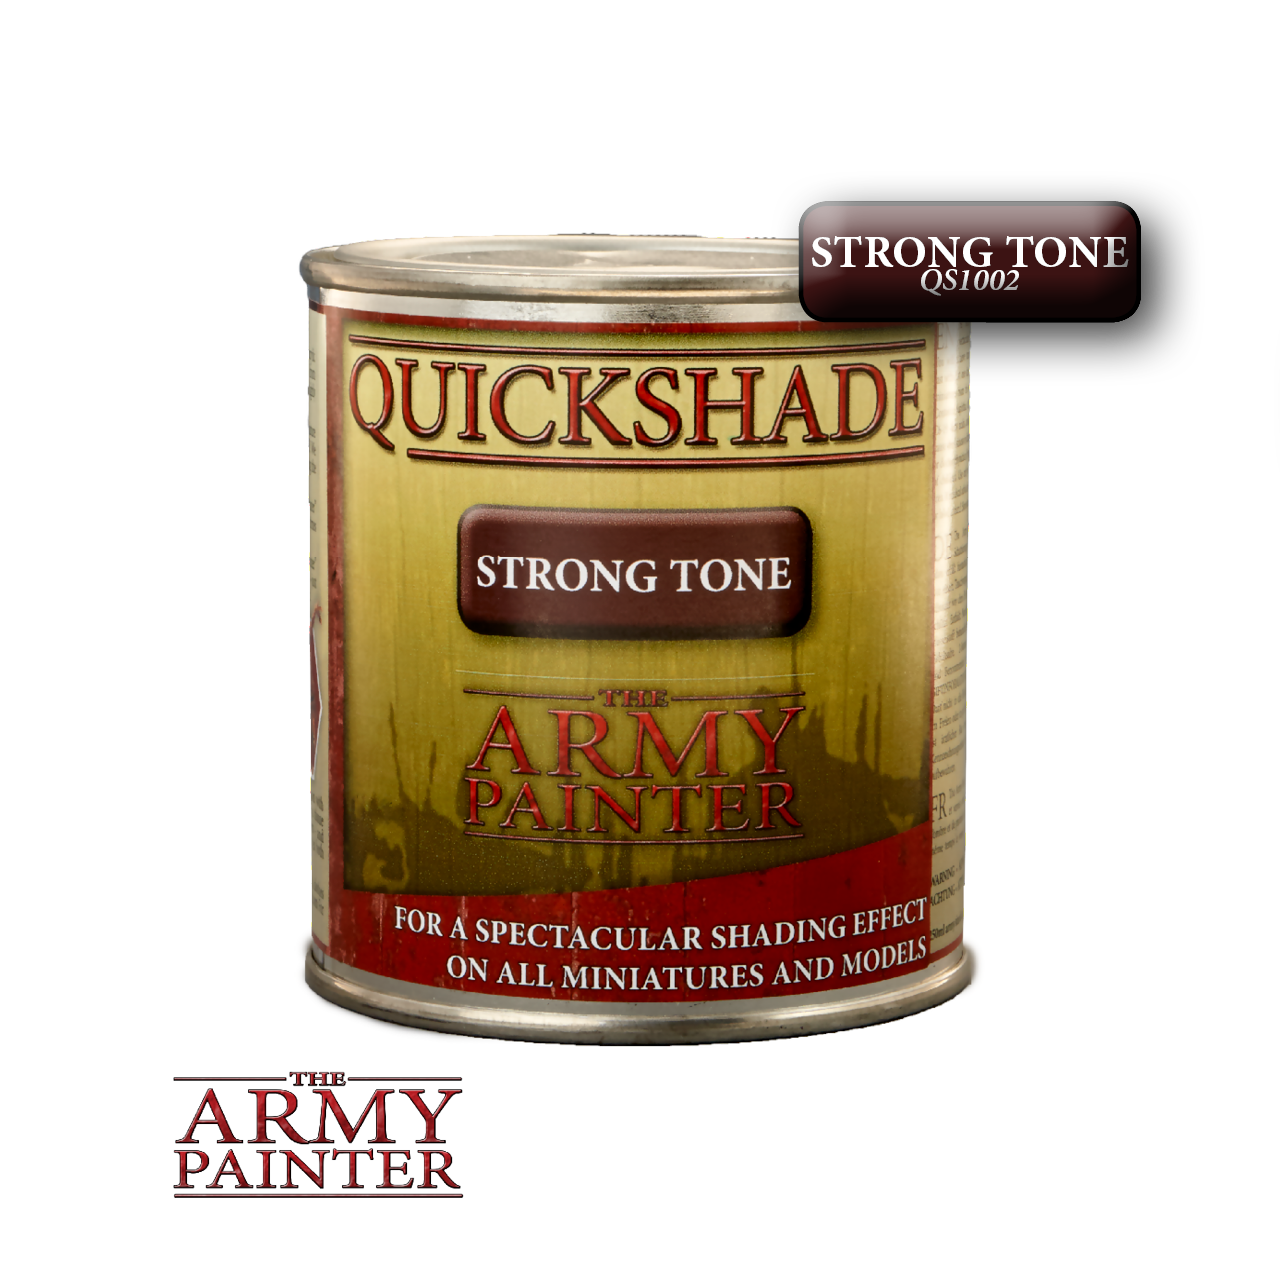 The Army Painter Quickshade Strong Tone